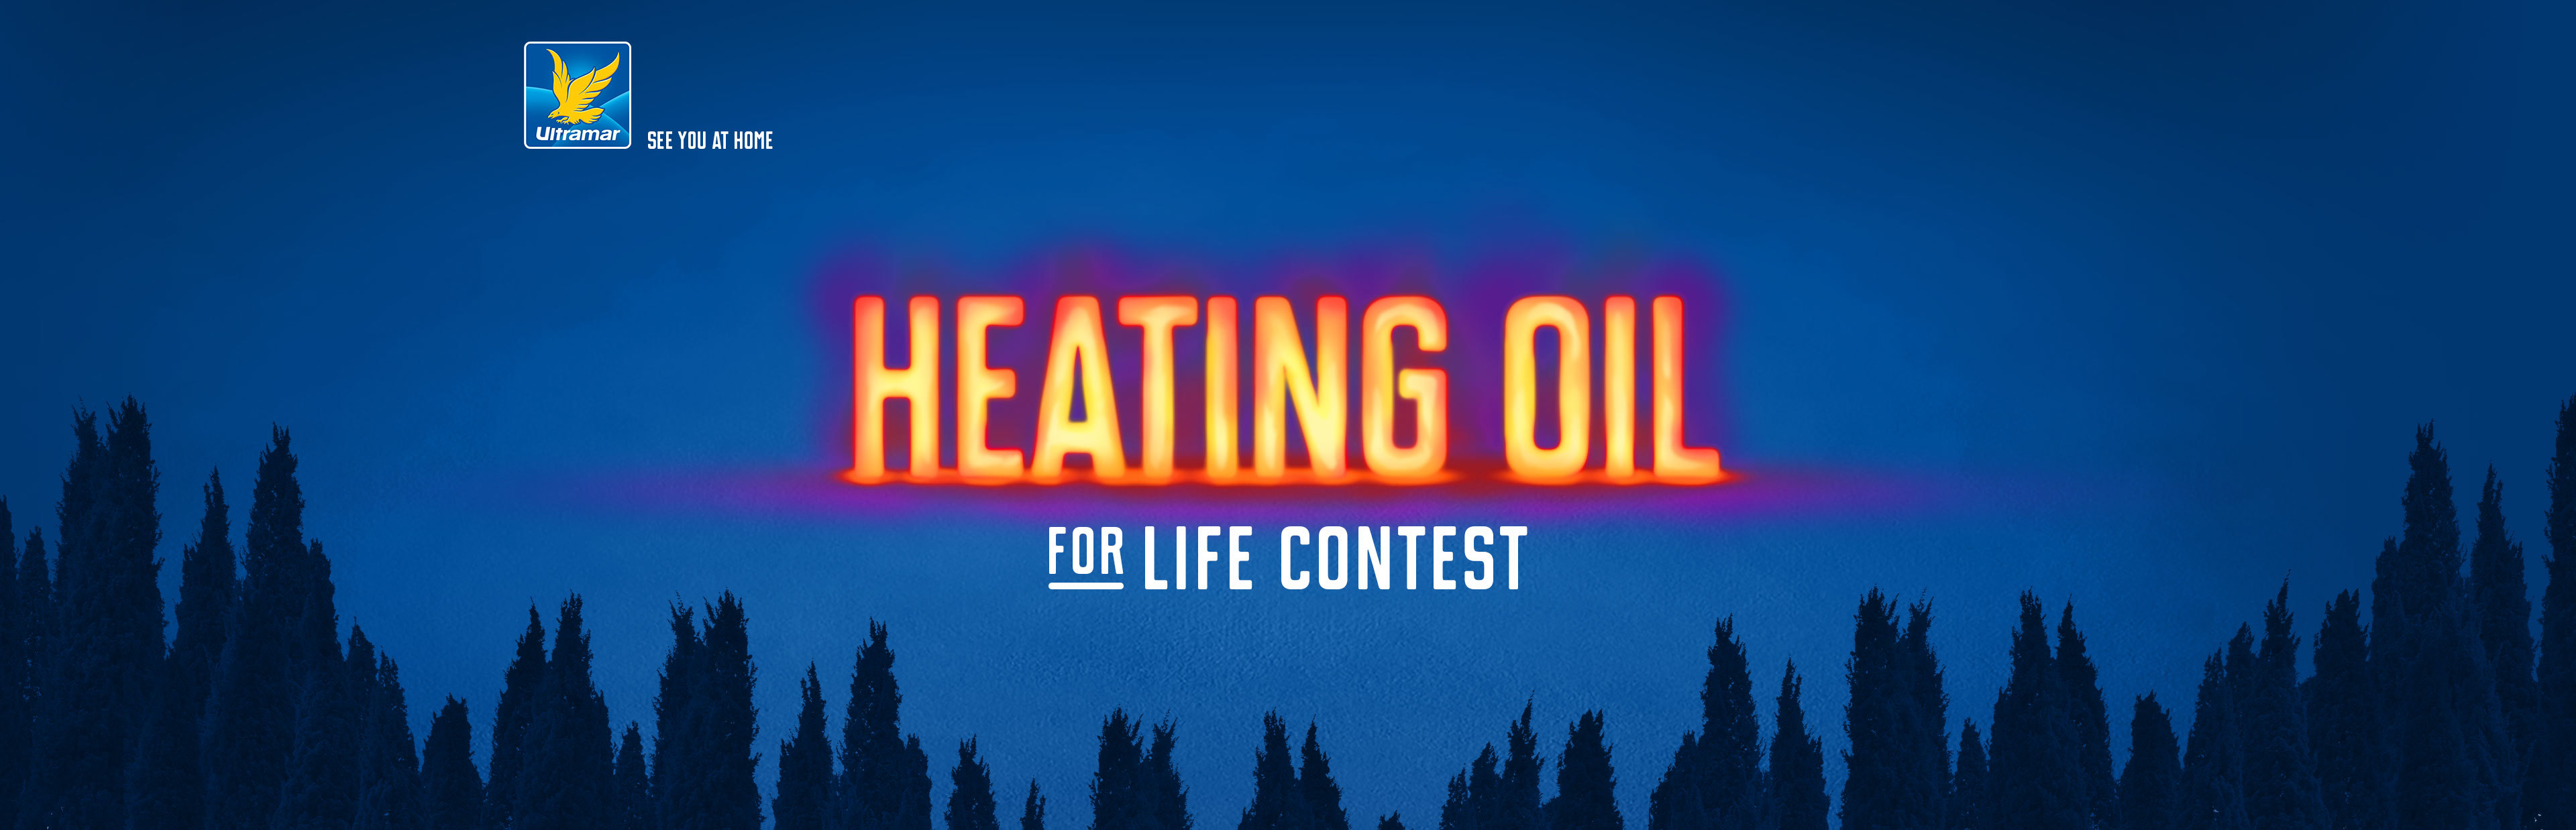 Contest Win Heating Oil for Life, participate before January 2nd